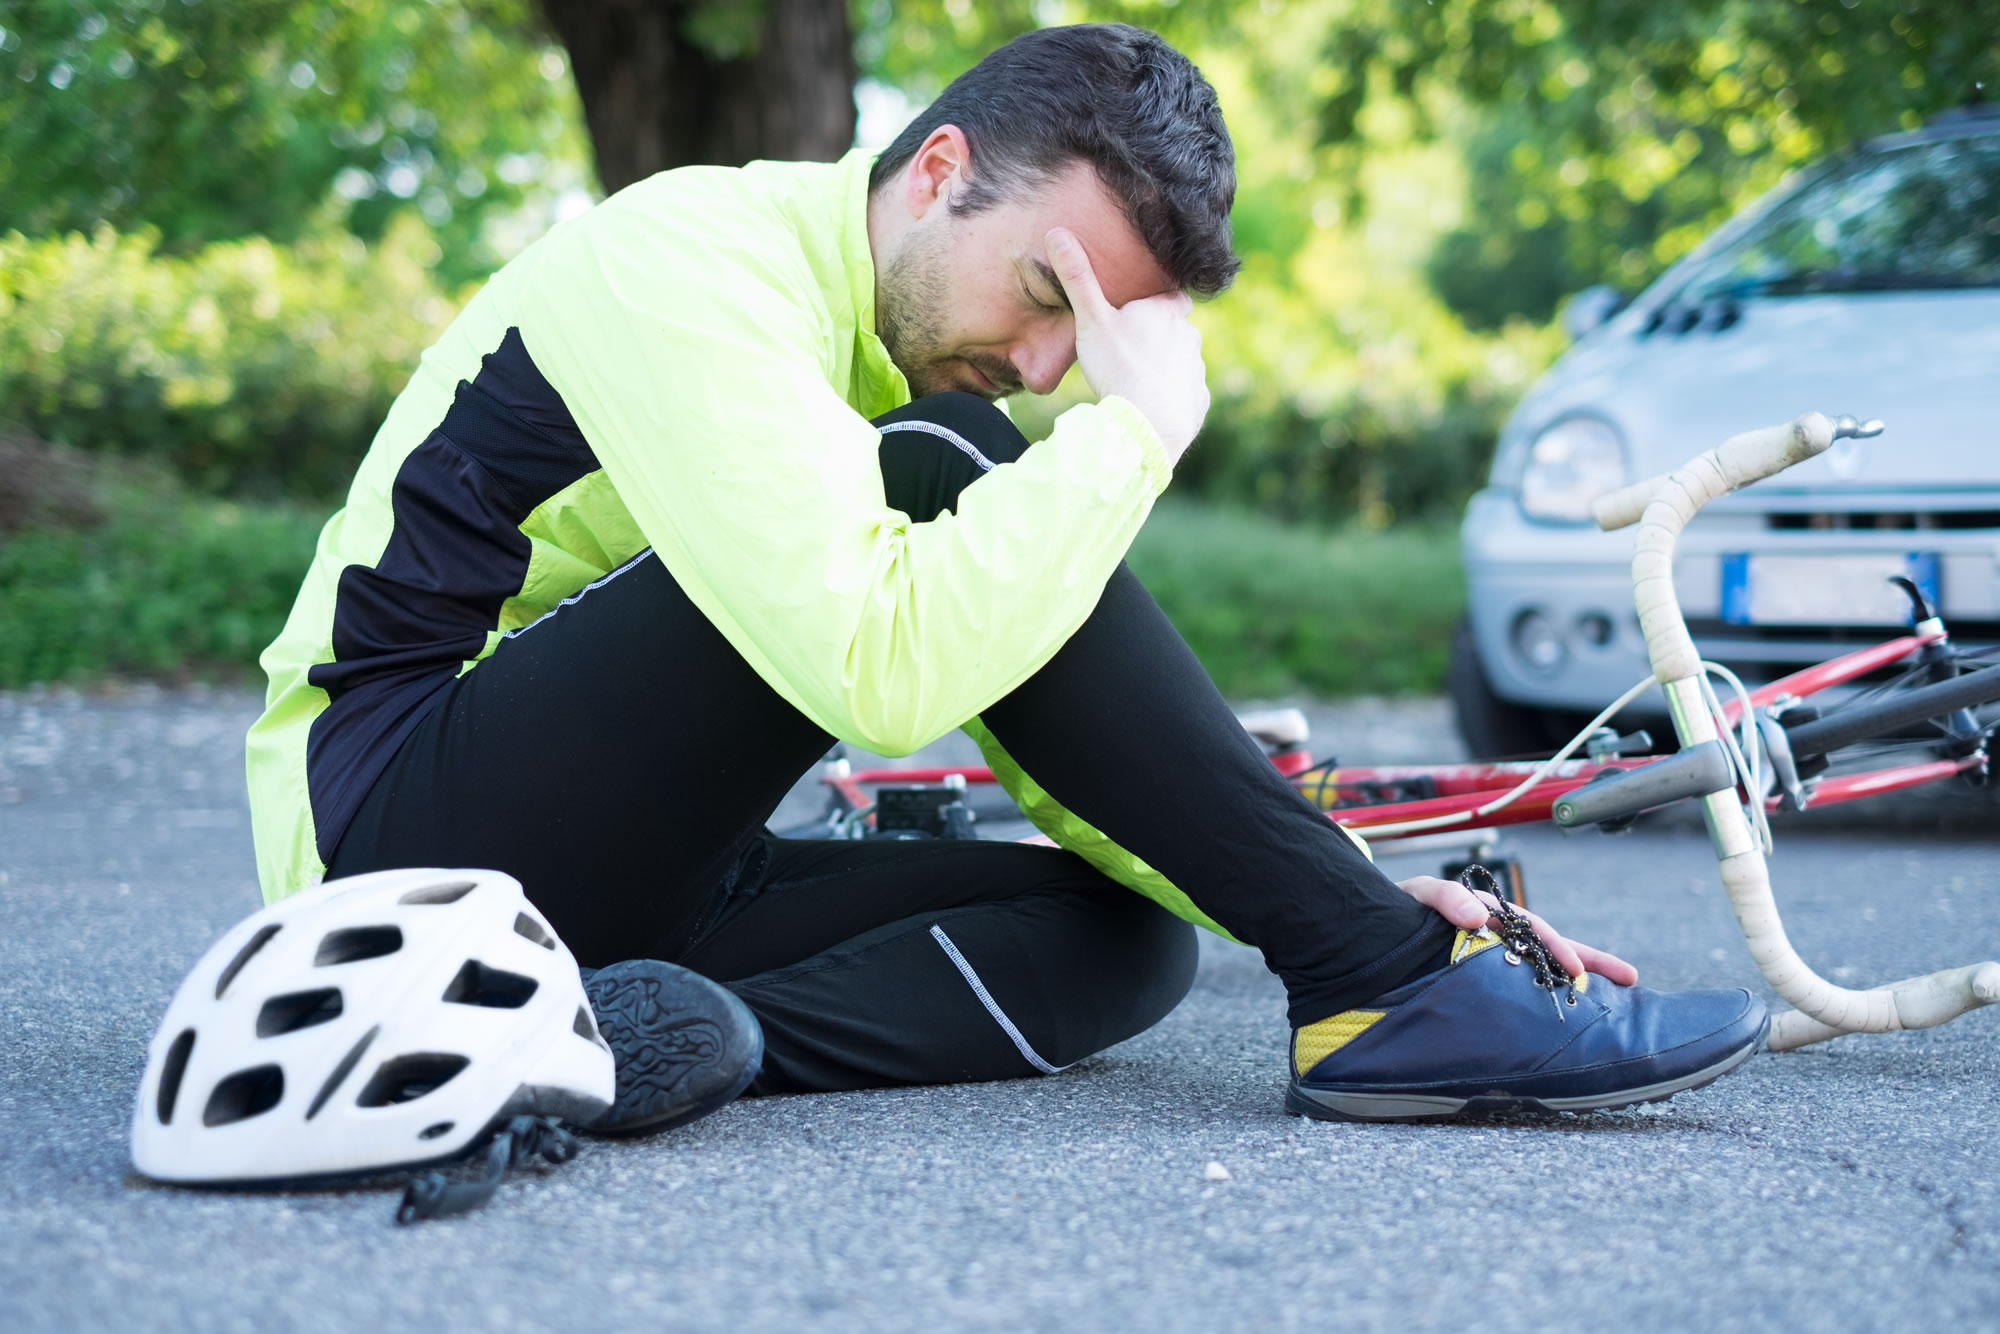 Knocked off Bike, Bicycle Accident, Cyclist Crash - Personal Injury Claim Experts / No Win, No Fee / Accident Claims UK